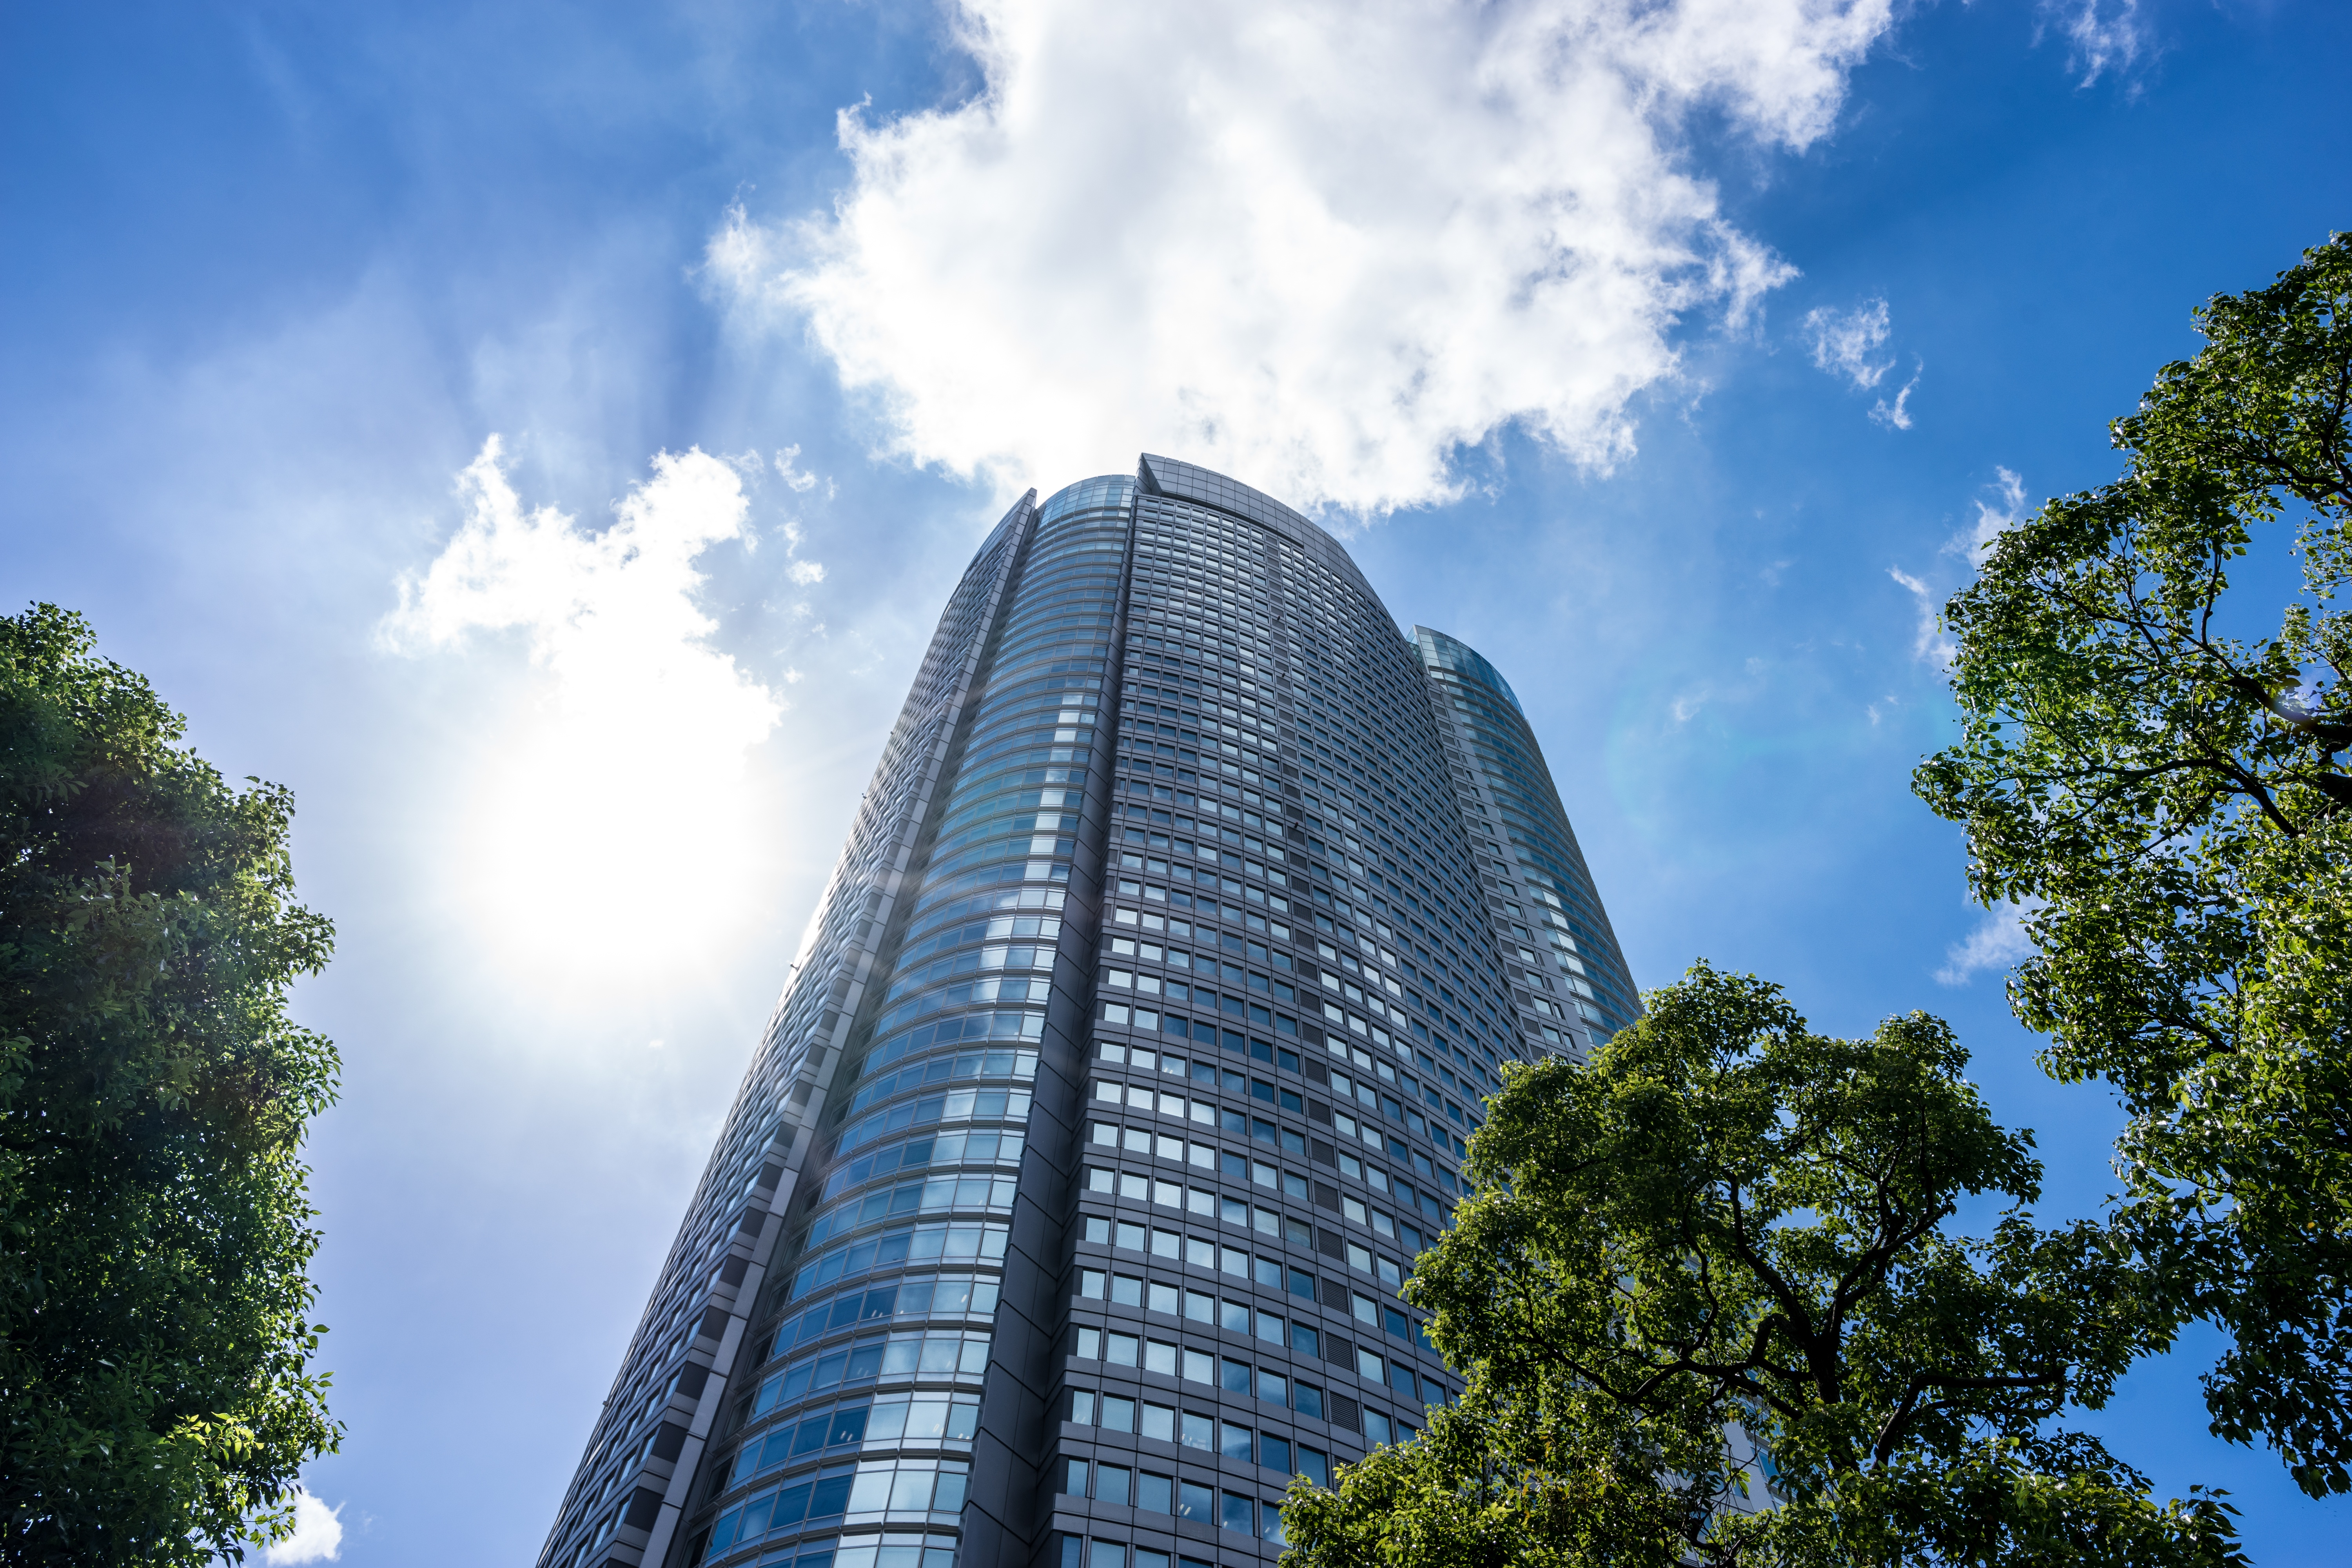 High-rise-buildings-and-blue-sky-(office-buildings-and-buildings)-620952326_6000x4000